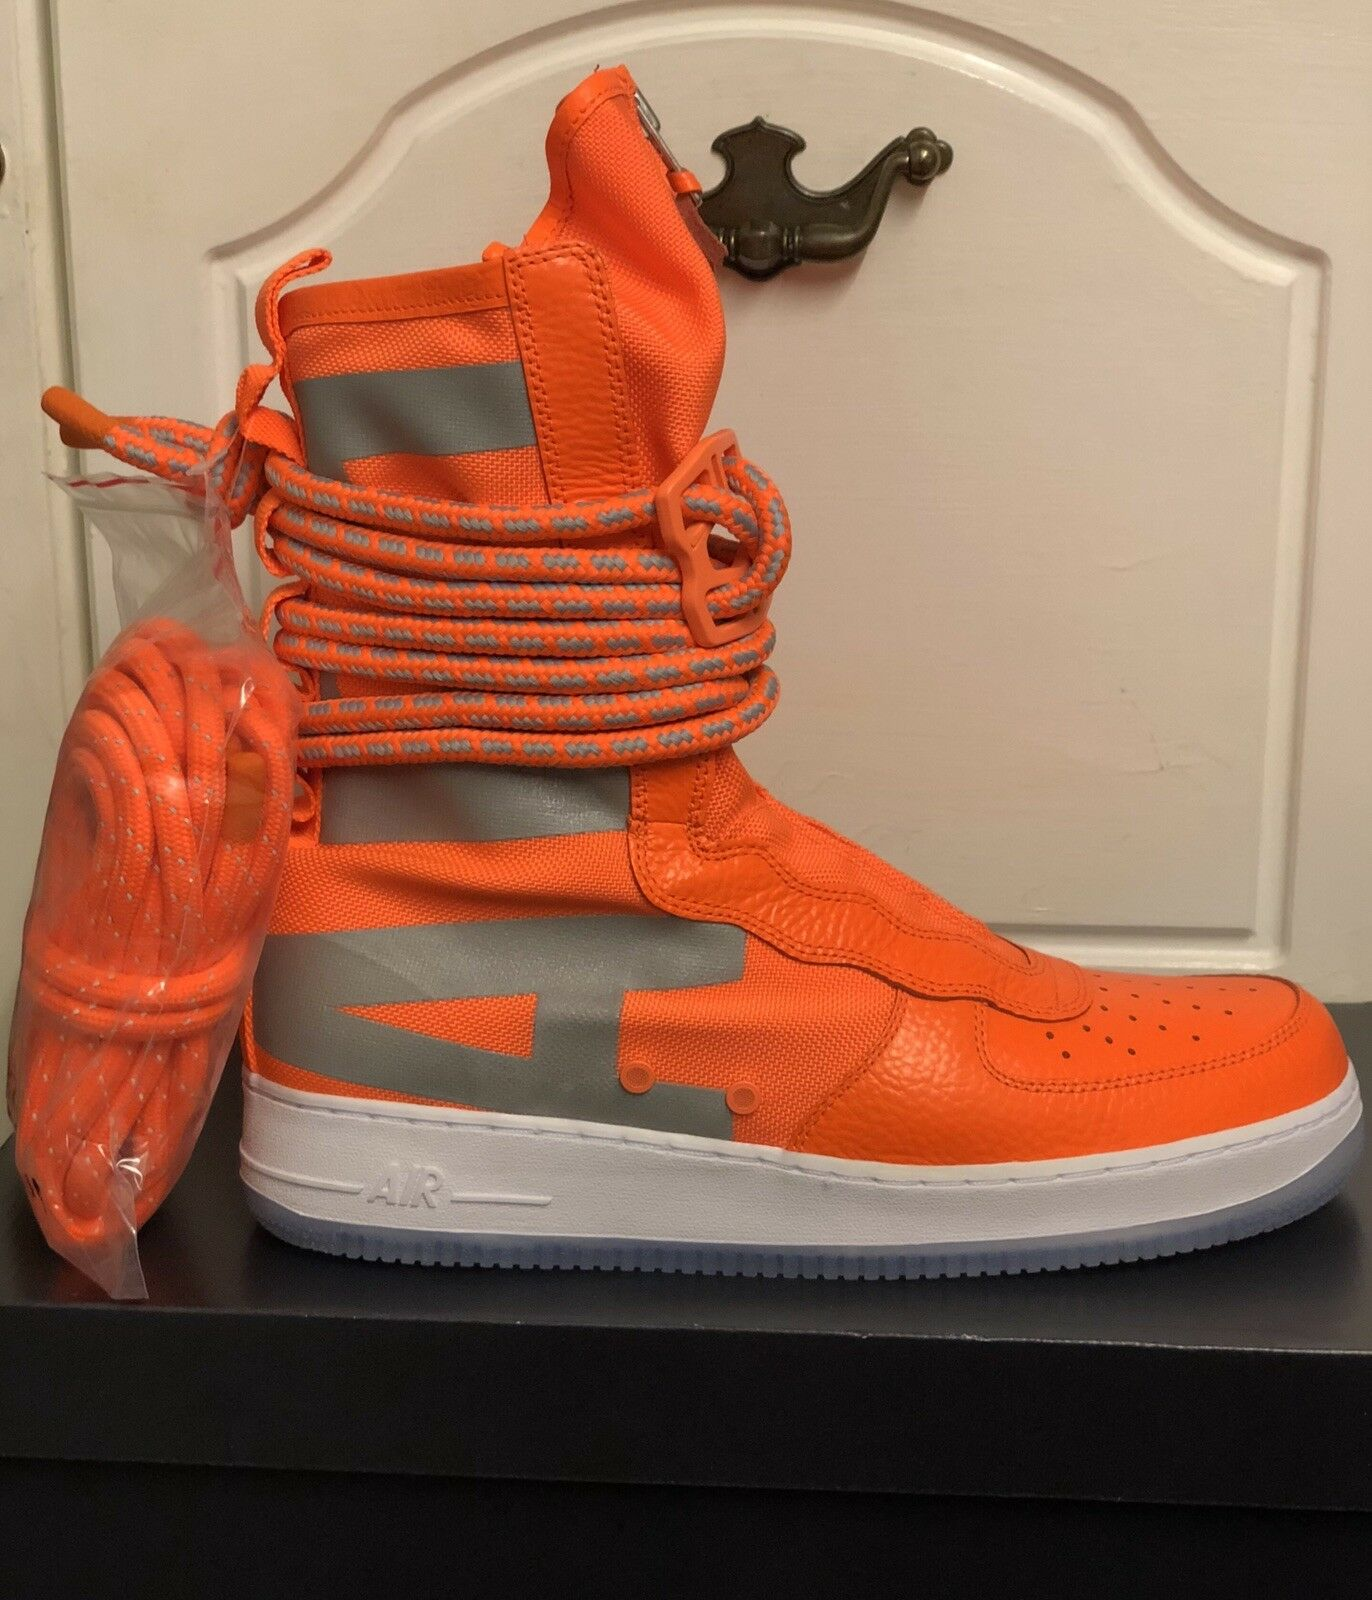 NIKE SF AF1 SPECIAL FIELD AIR FORCE 1 MENS BOOT BOOT BOOT TRAINERS SHOES UK 10 EUR 45 US11 61ea30